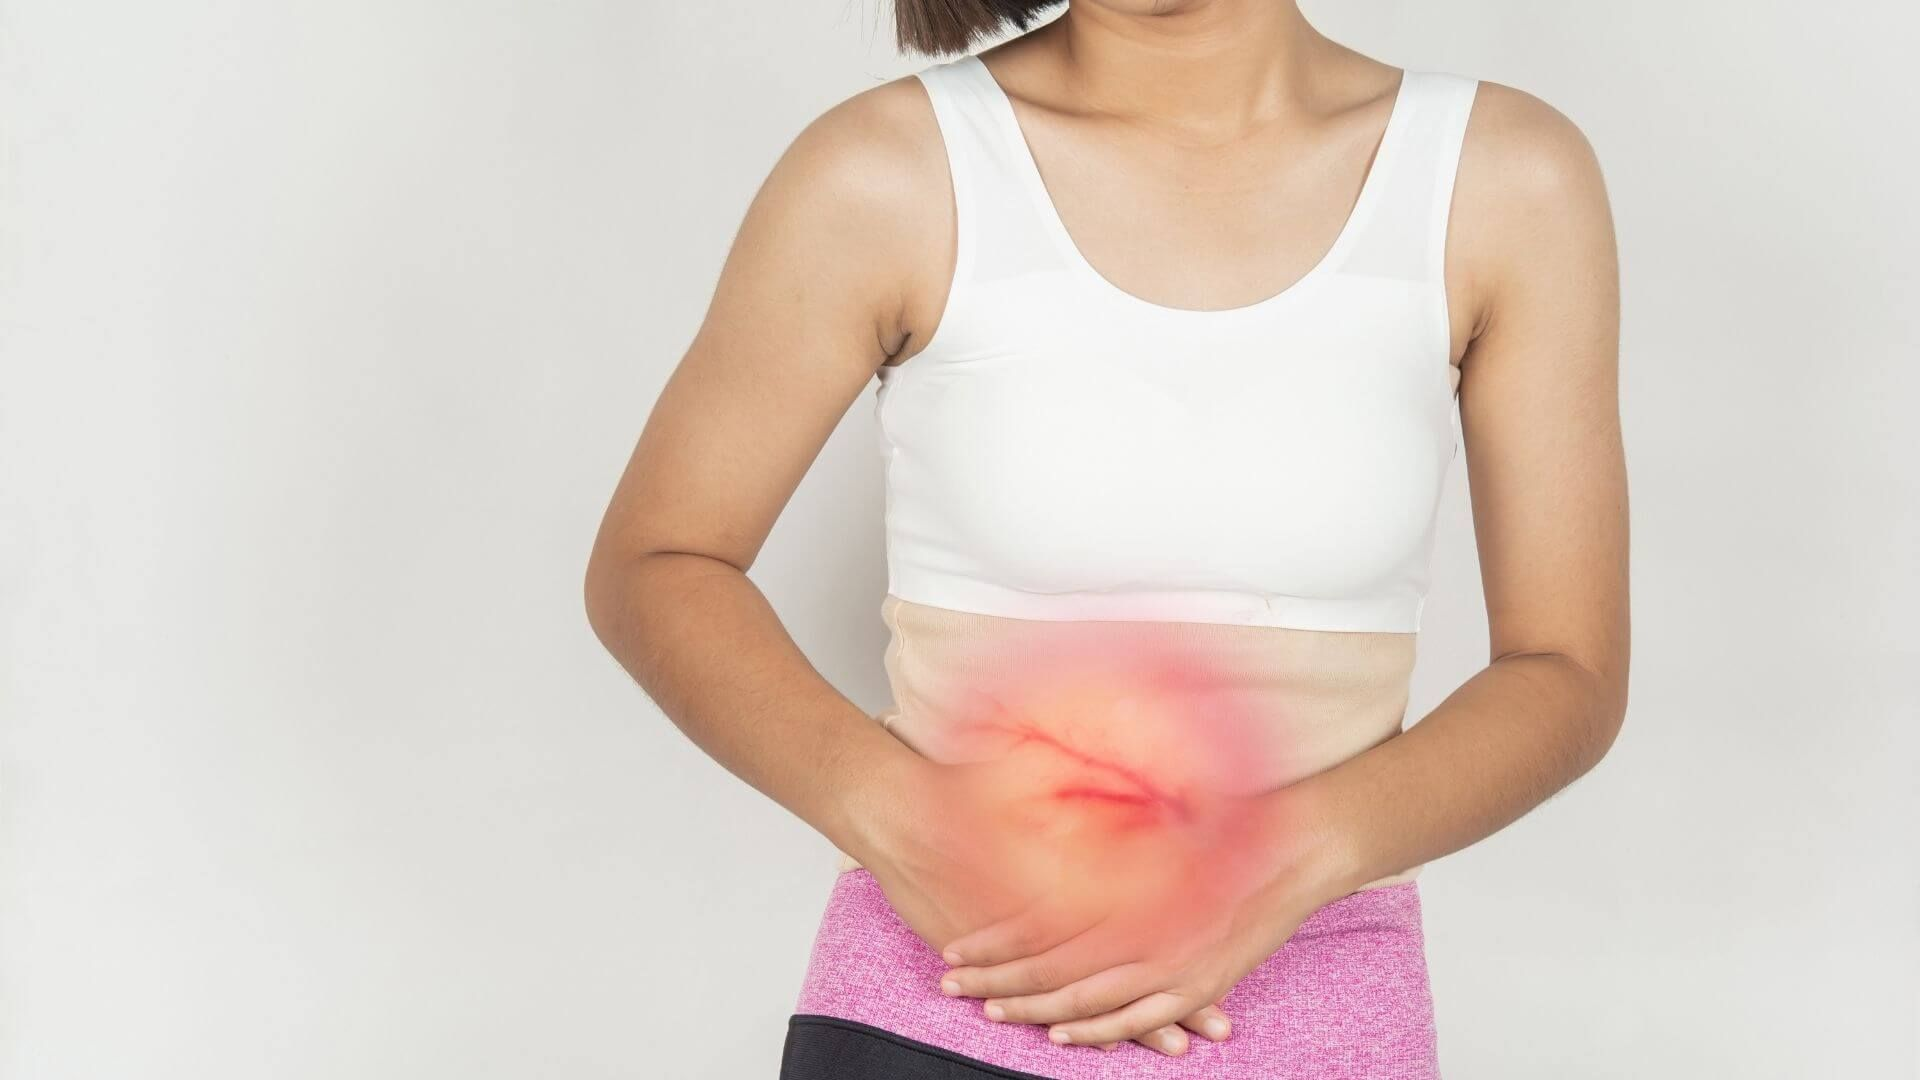 What to Expect After Gall Bladder Removal